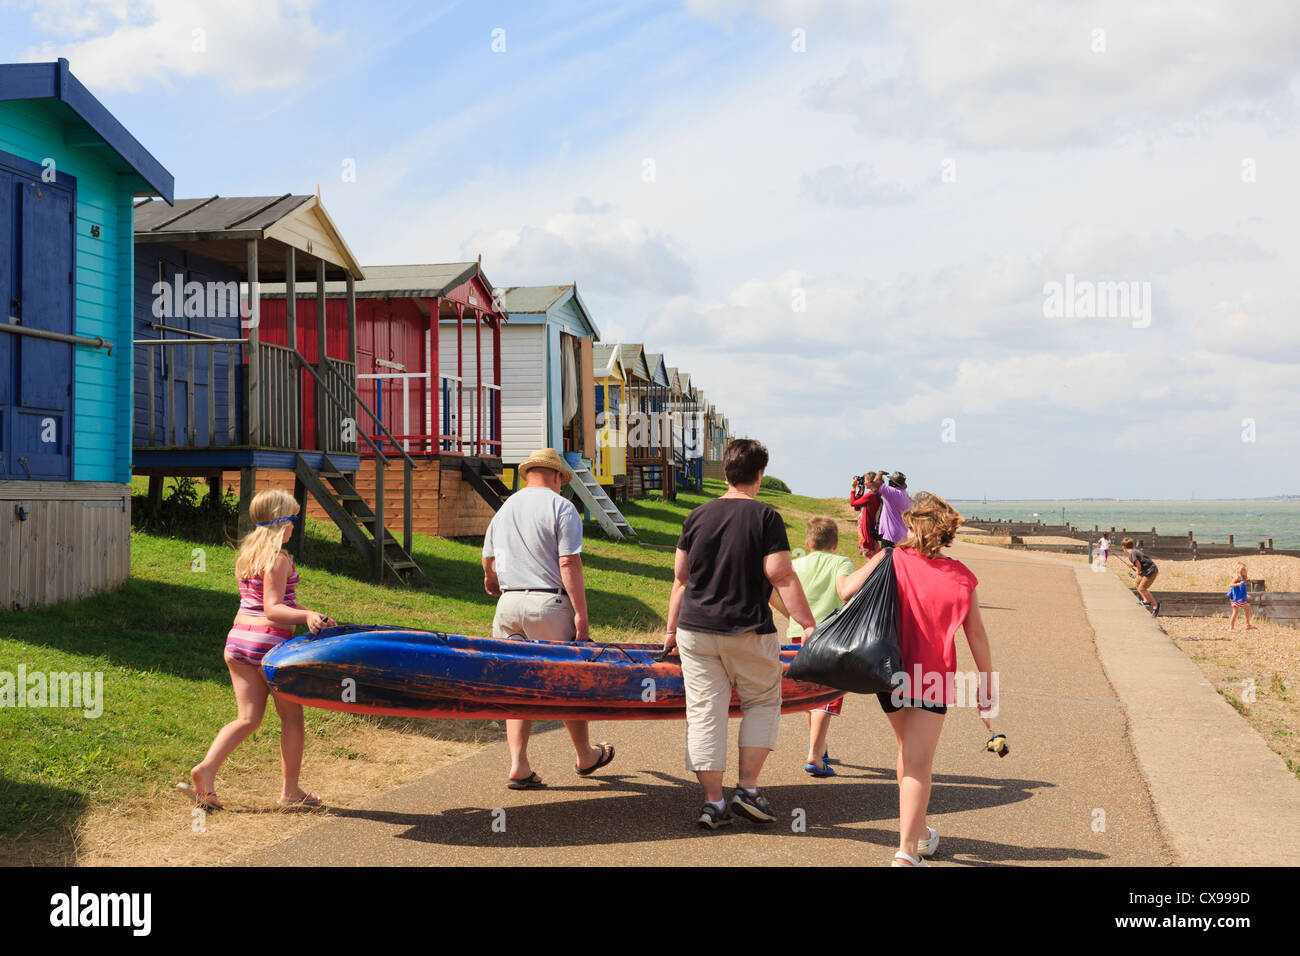 People on Whitstable seafront promenade with beach huts on north Kent coast Thames estuary in summer. Tankerton - Stock Image